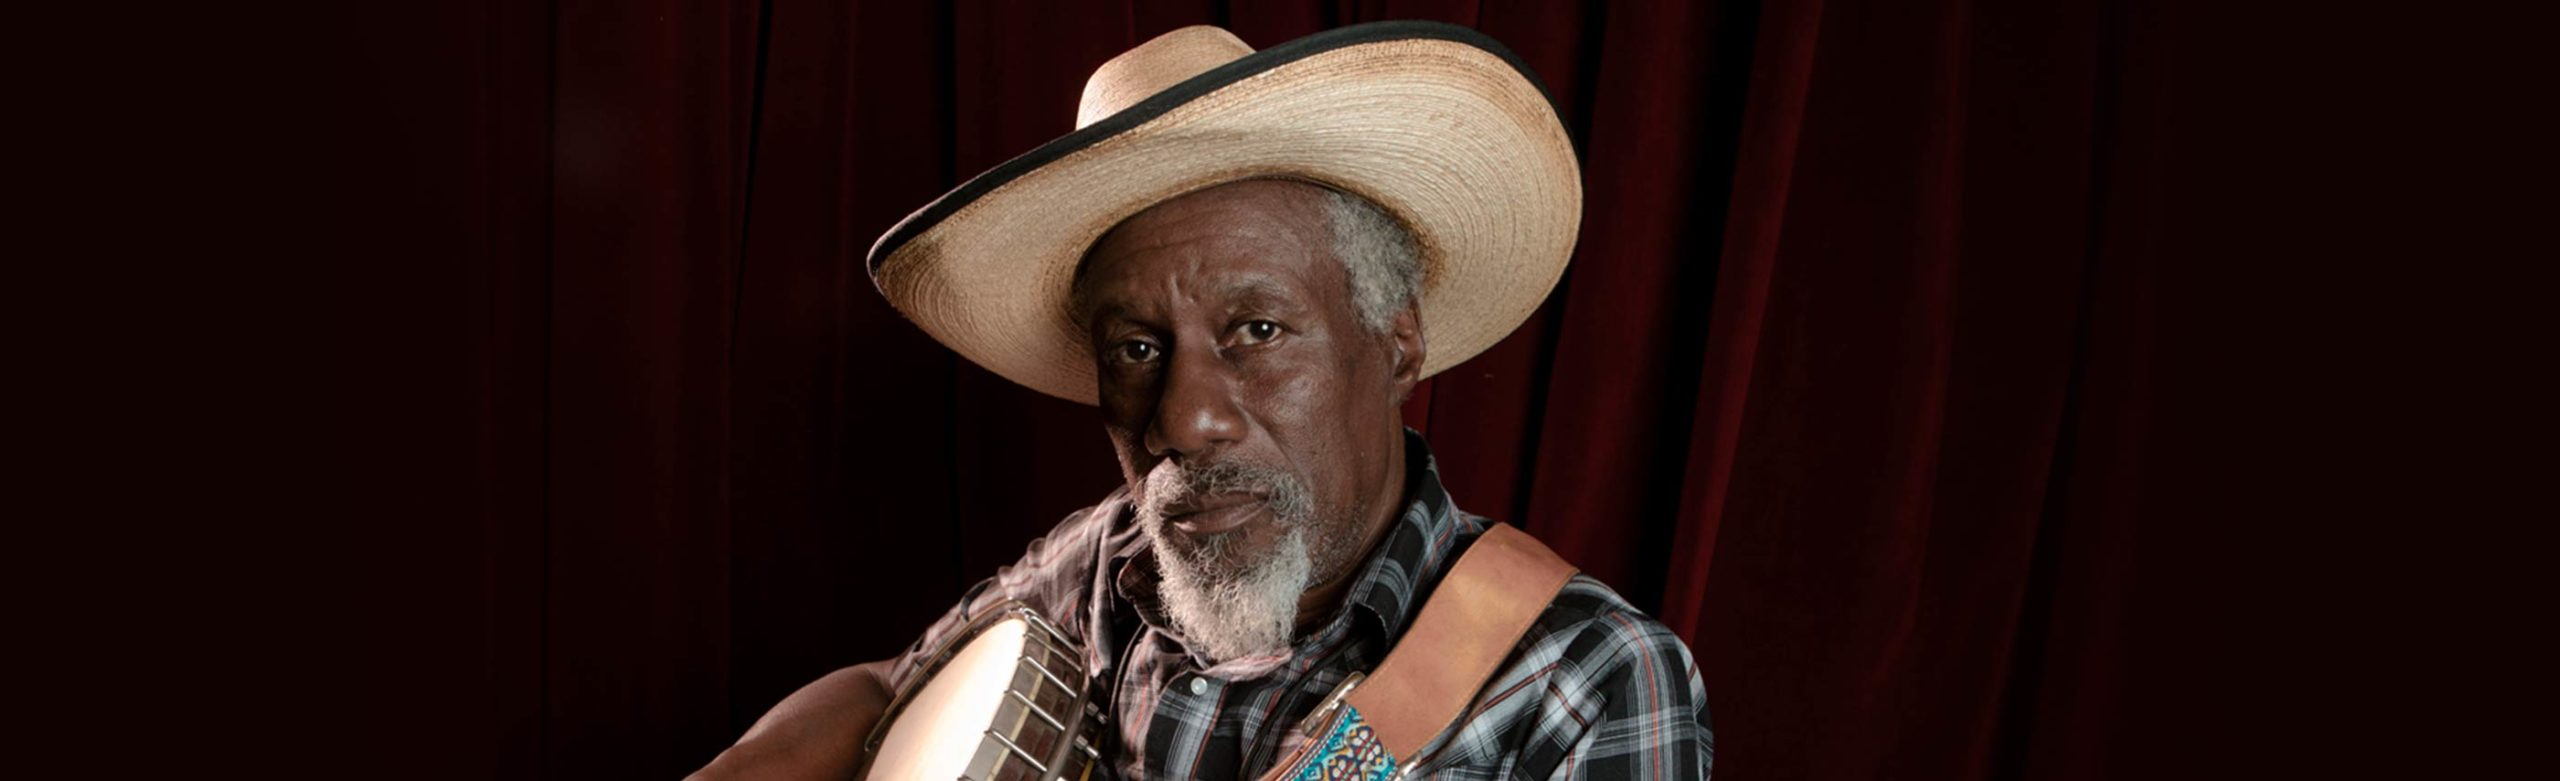 SUPPORT ANNOUNCED: Powerful Soul Singer-Songwriter Robert Finley Added to Lake Street Dive Bill Image